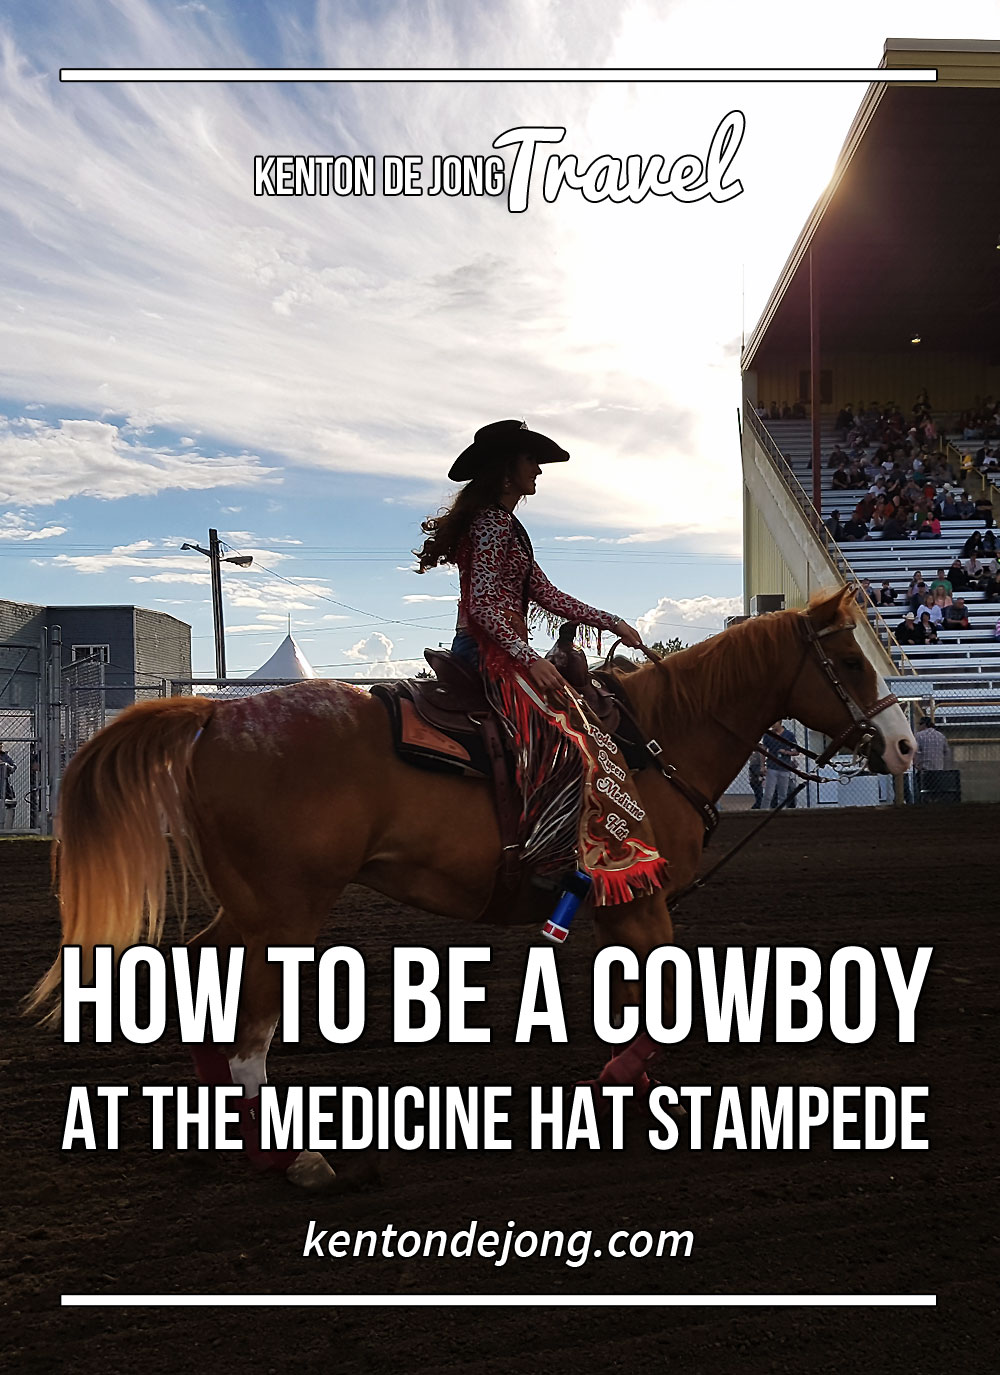 How to be a Cowboy at the Medicine Hat Stampede